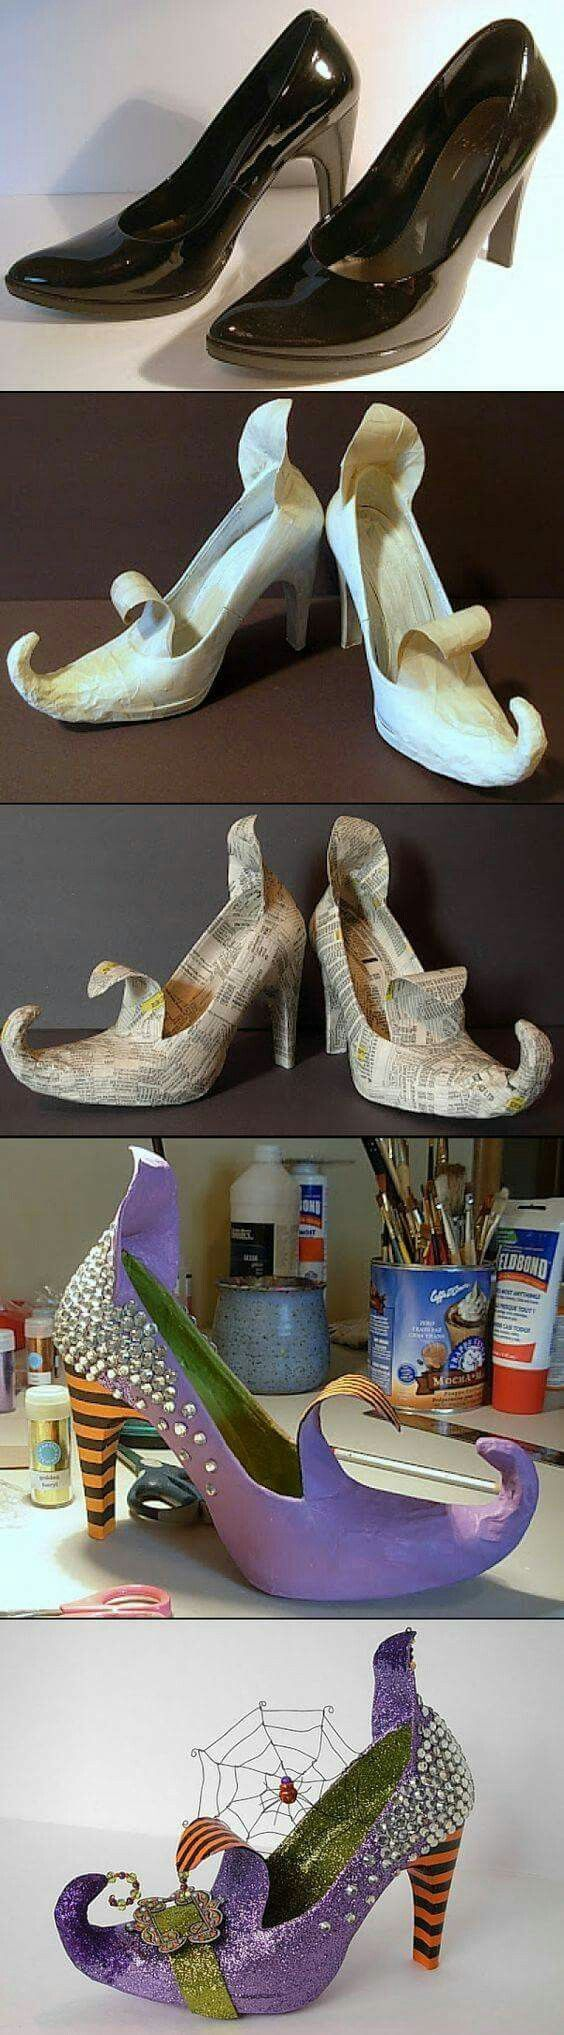 Halloween shoes decorations diy